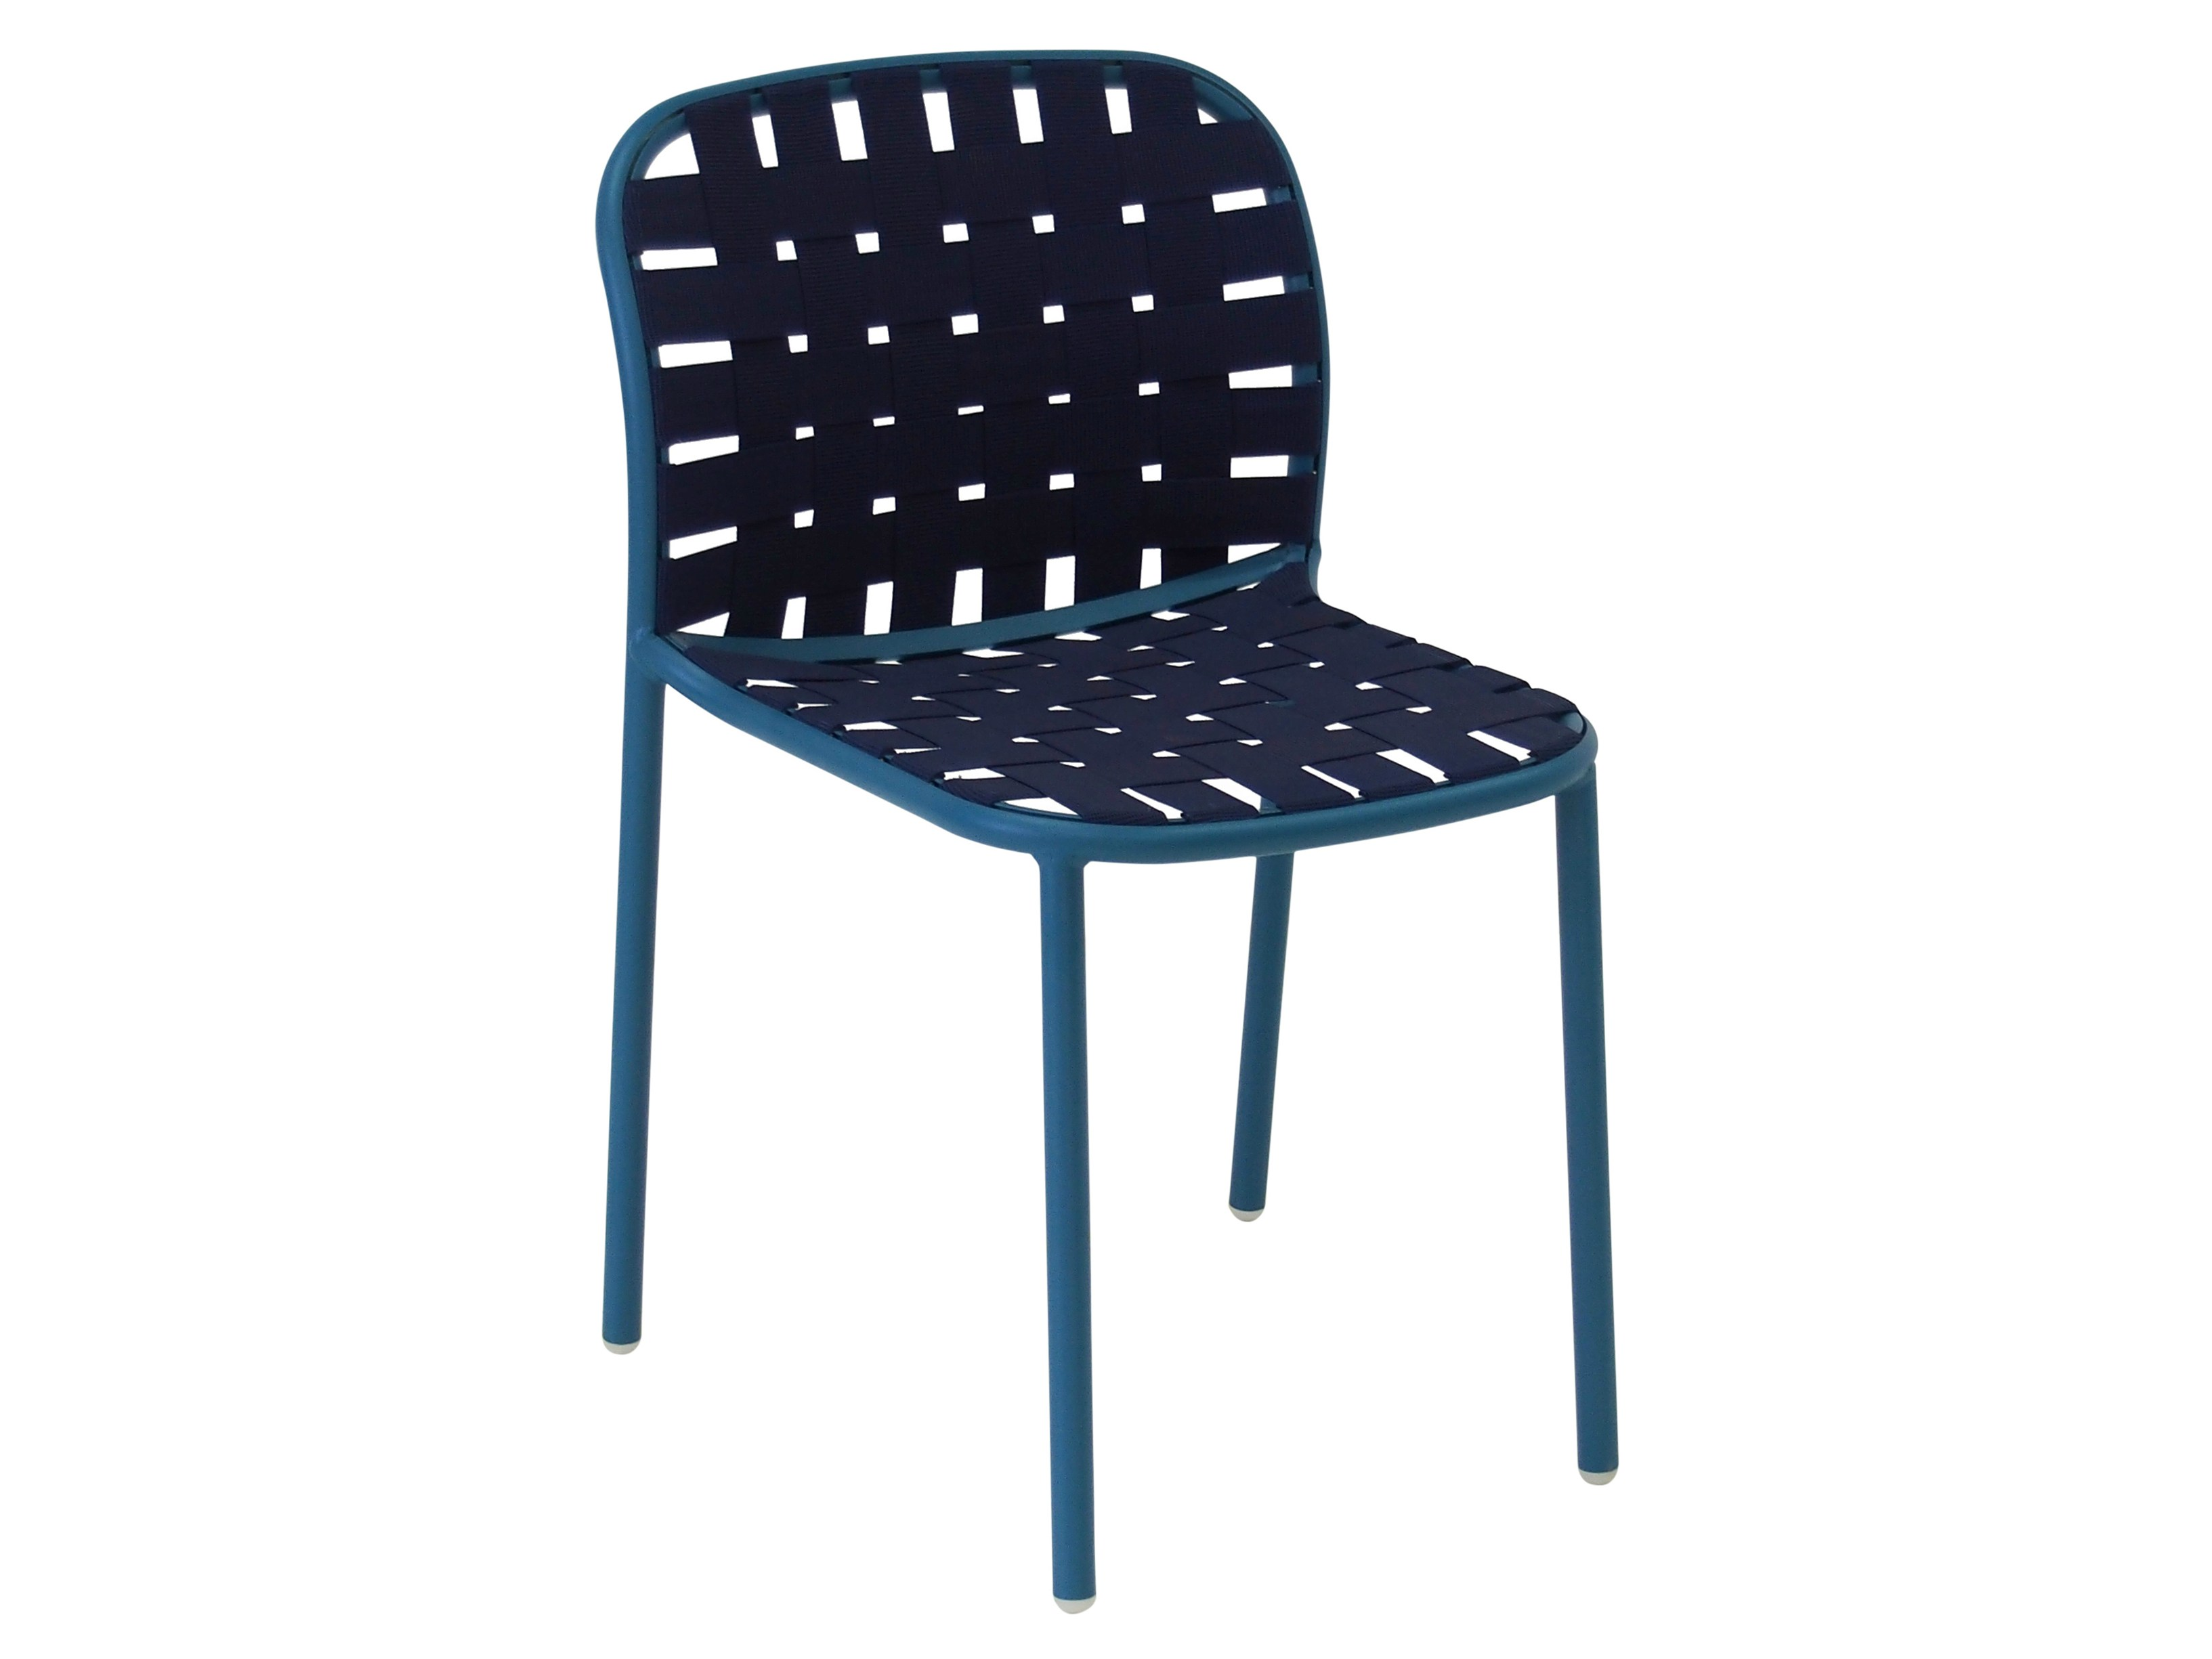 Yard Dining Chair by Stefan Diez for EMU GROUP